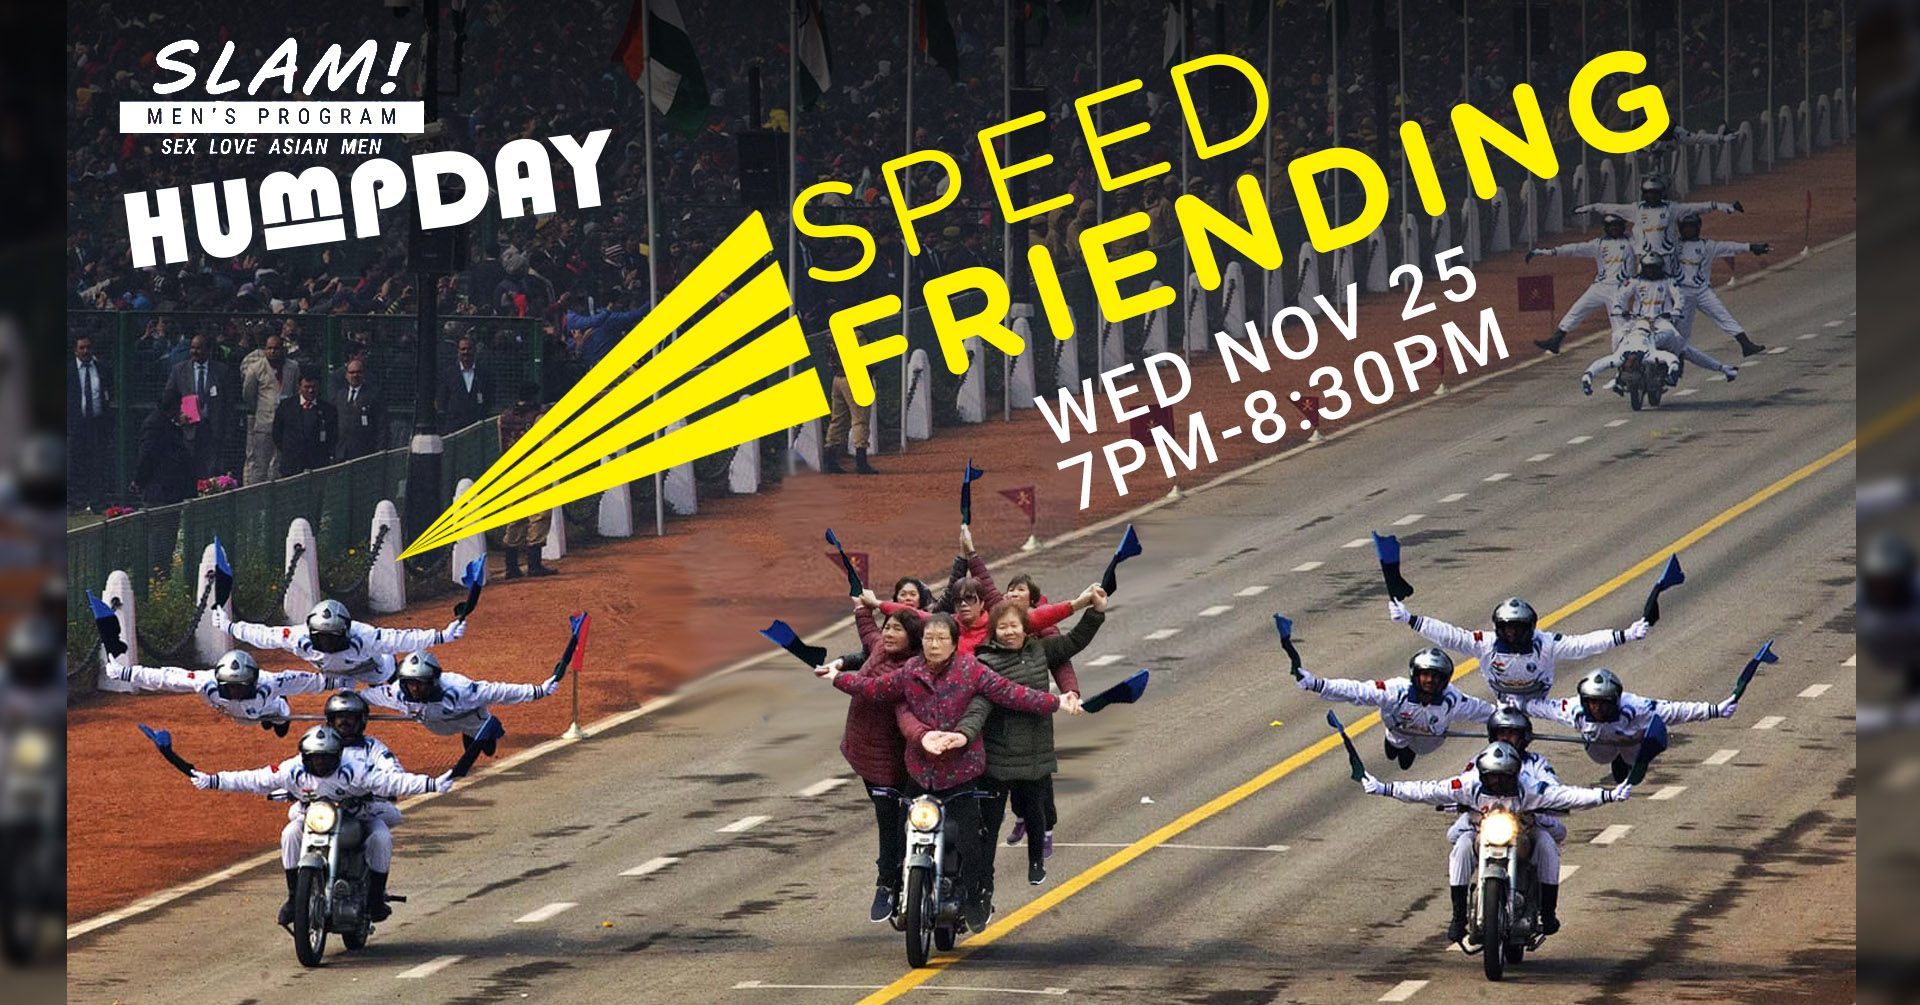 Poster for Humpday Speed Friending